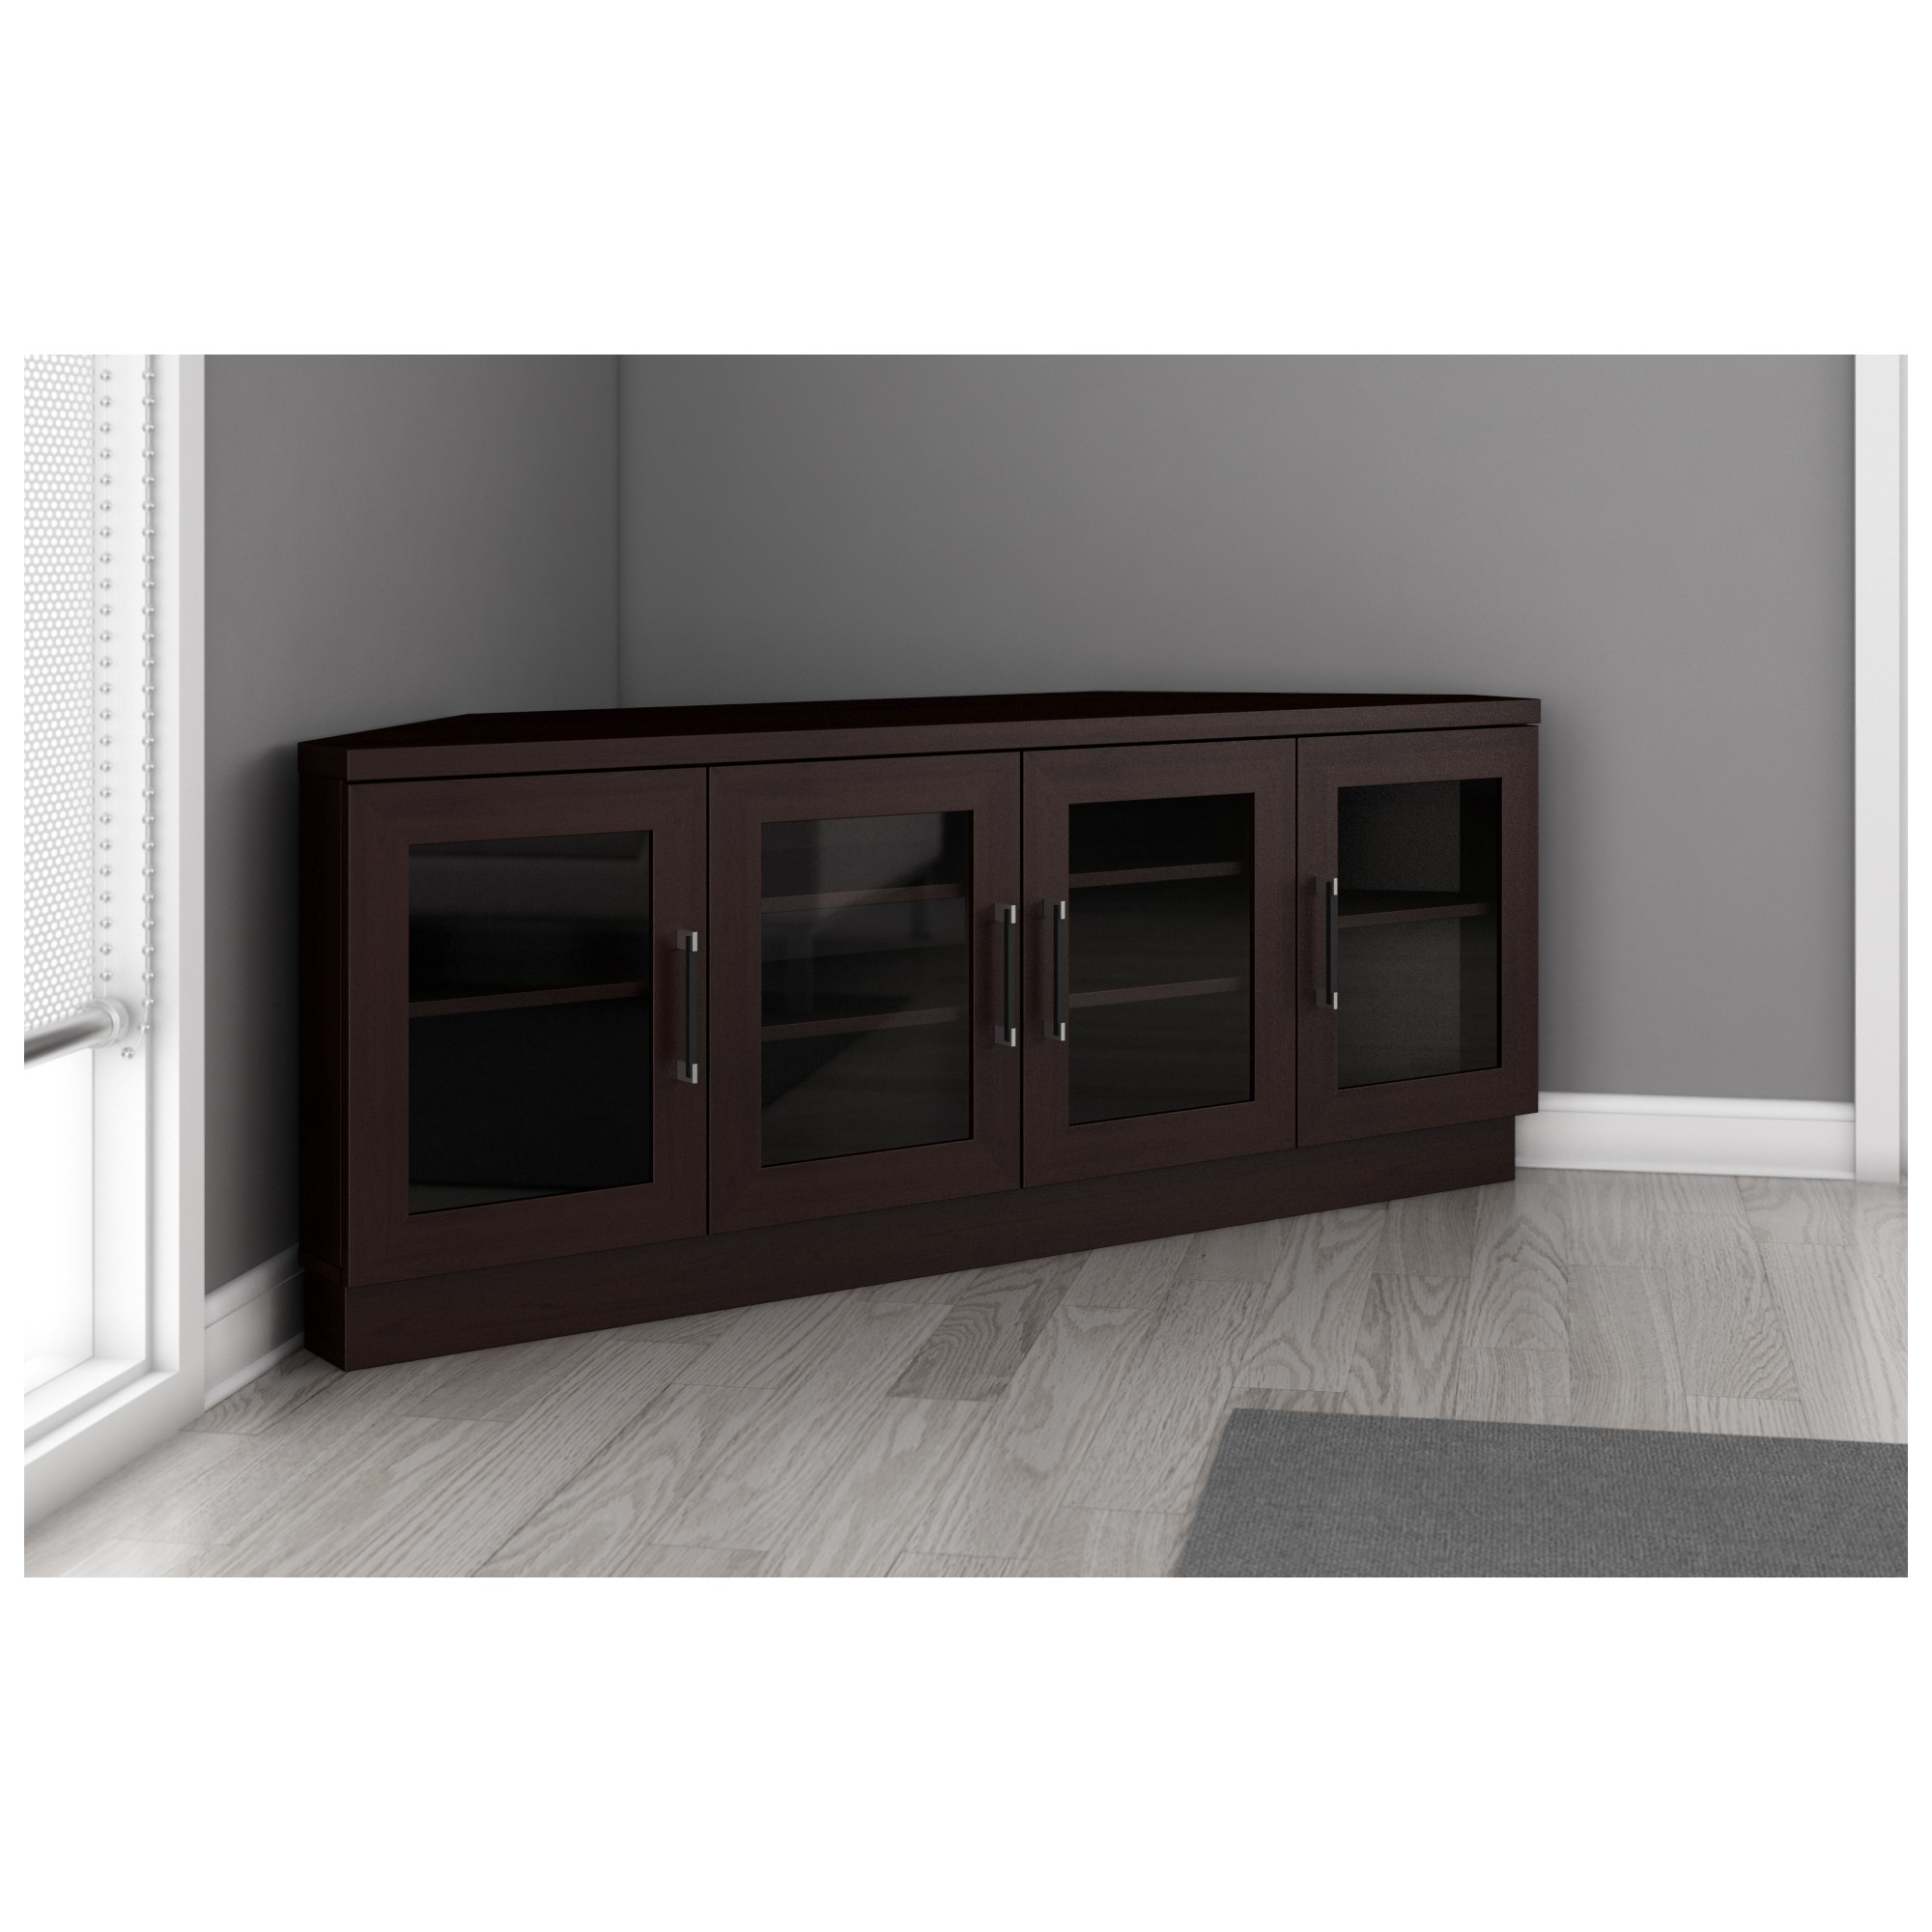 furnitech ftcccw  tv stand contemporary corner media cabinet  -  tv stand contemporary corner media cabinet in wenge